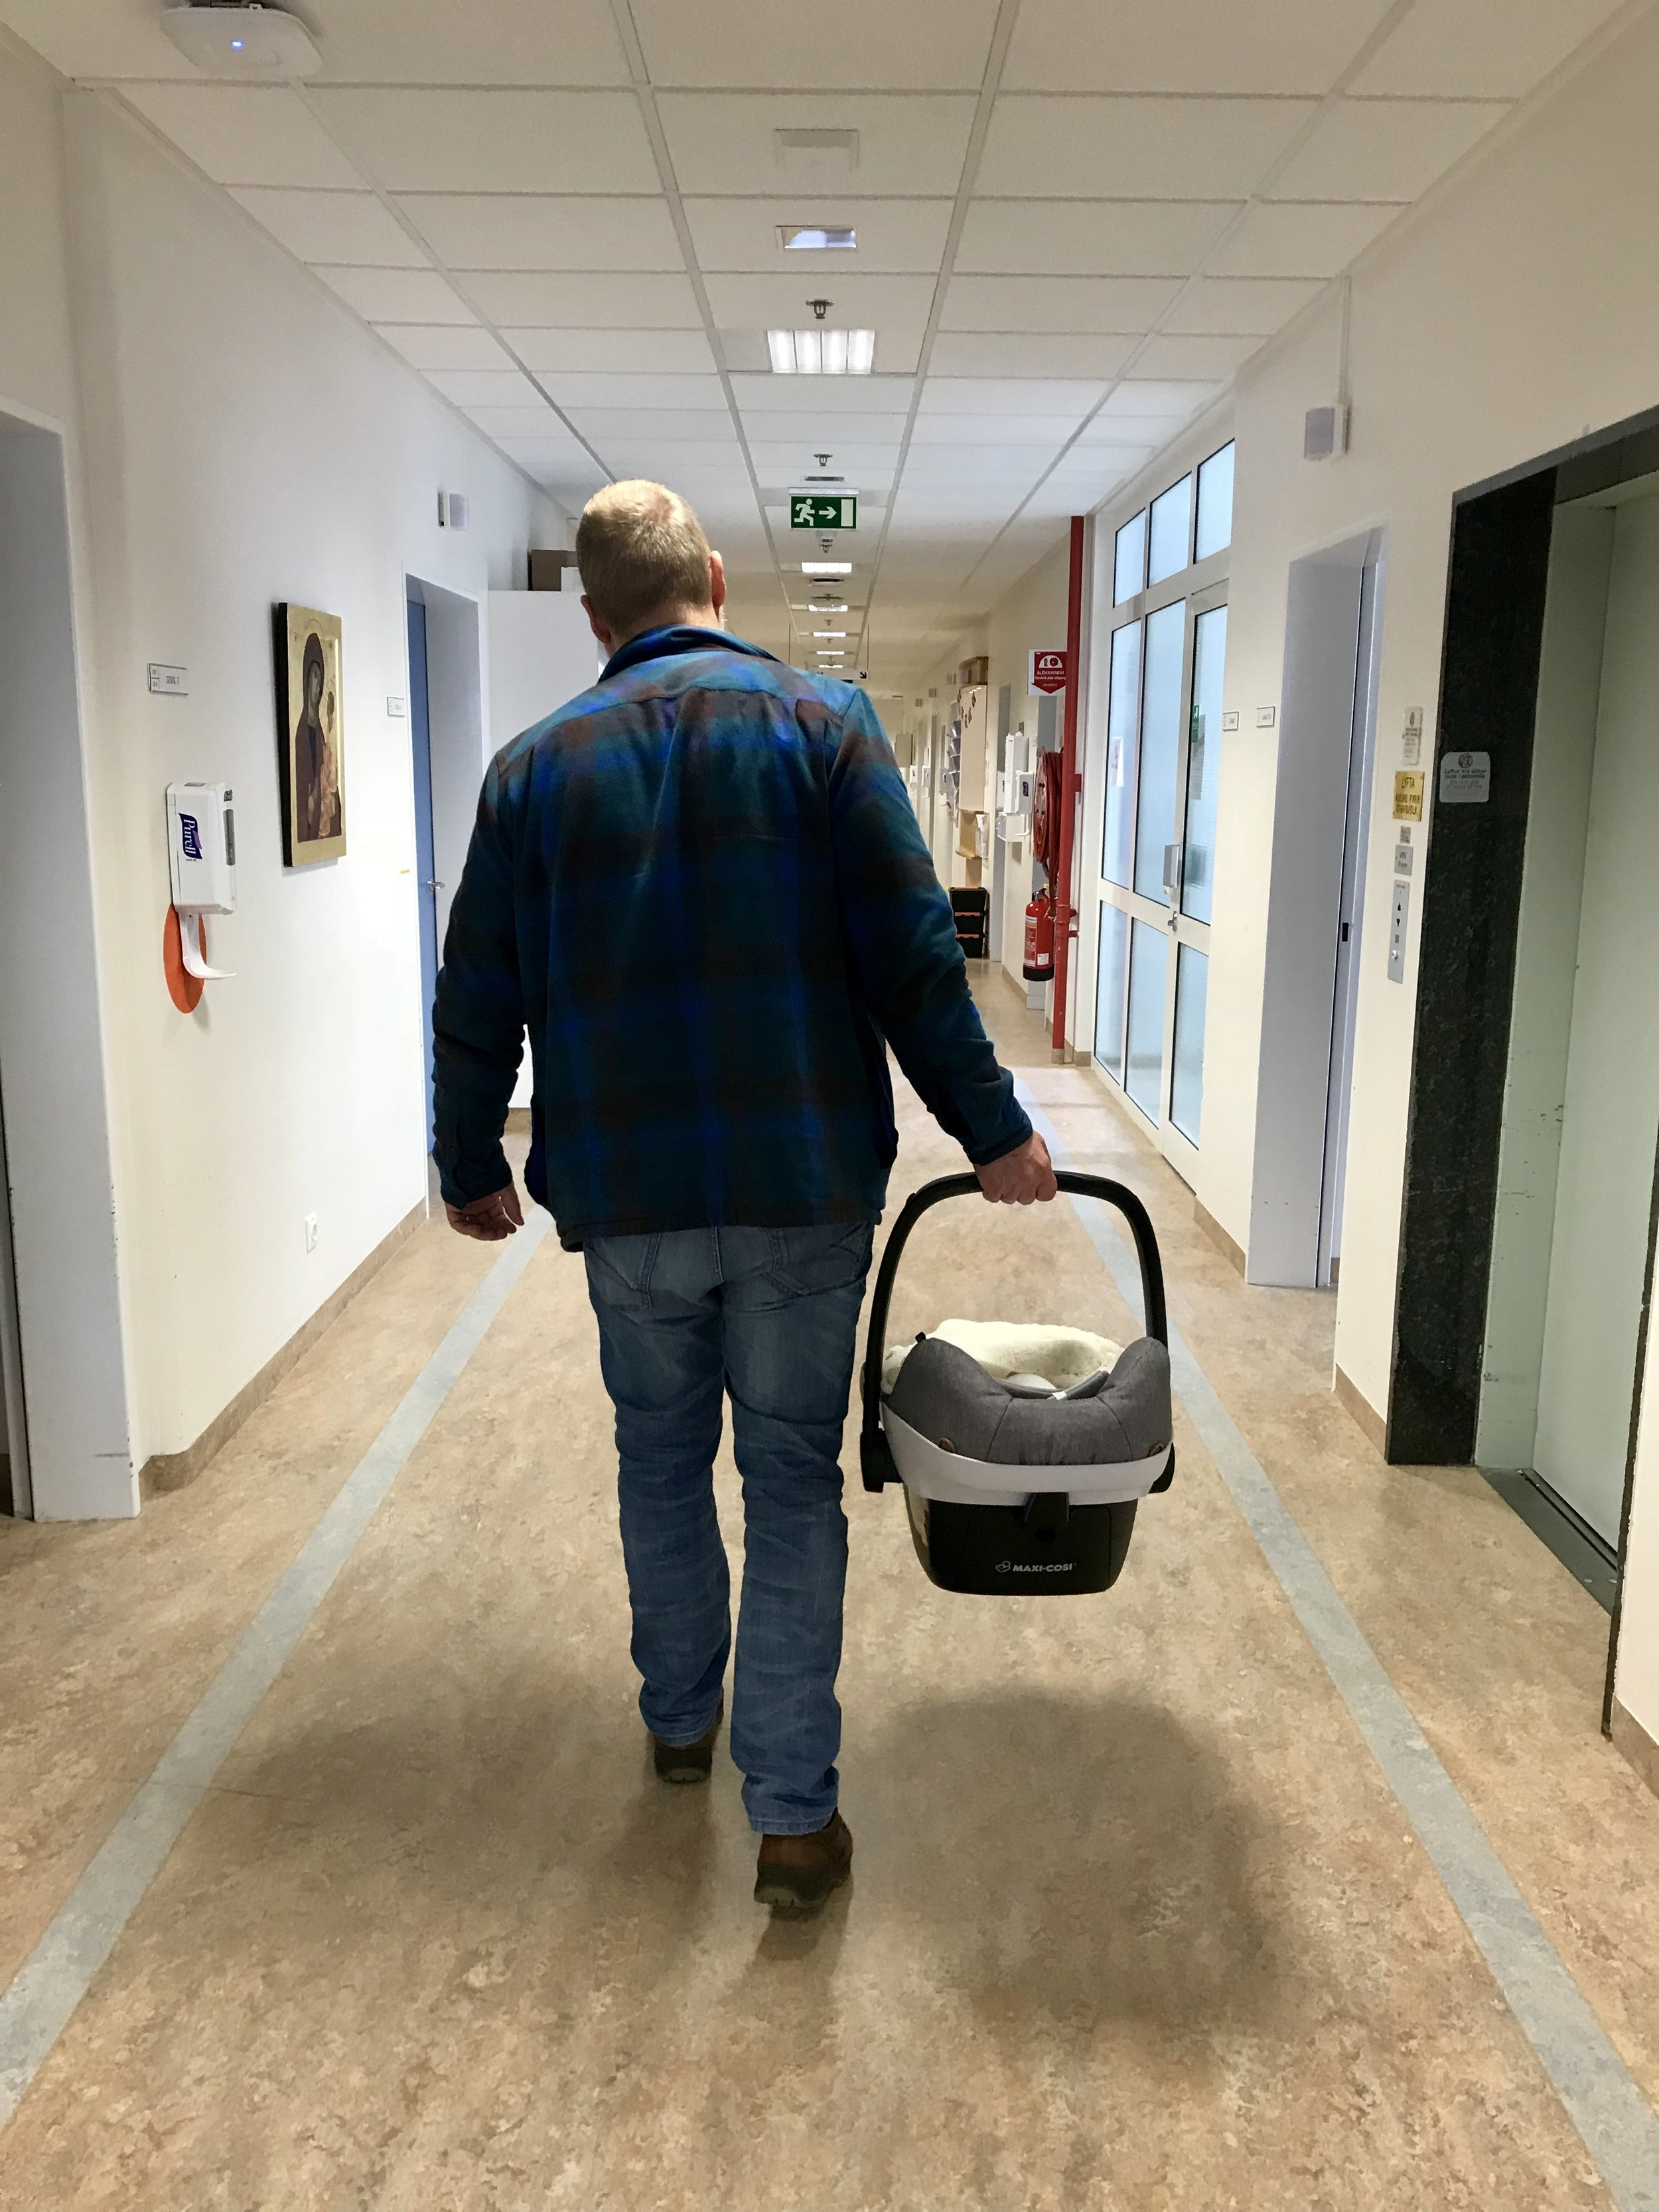 Leaving the delivery ward